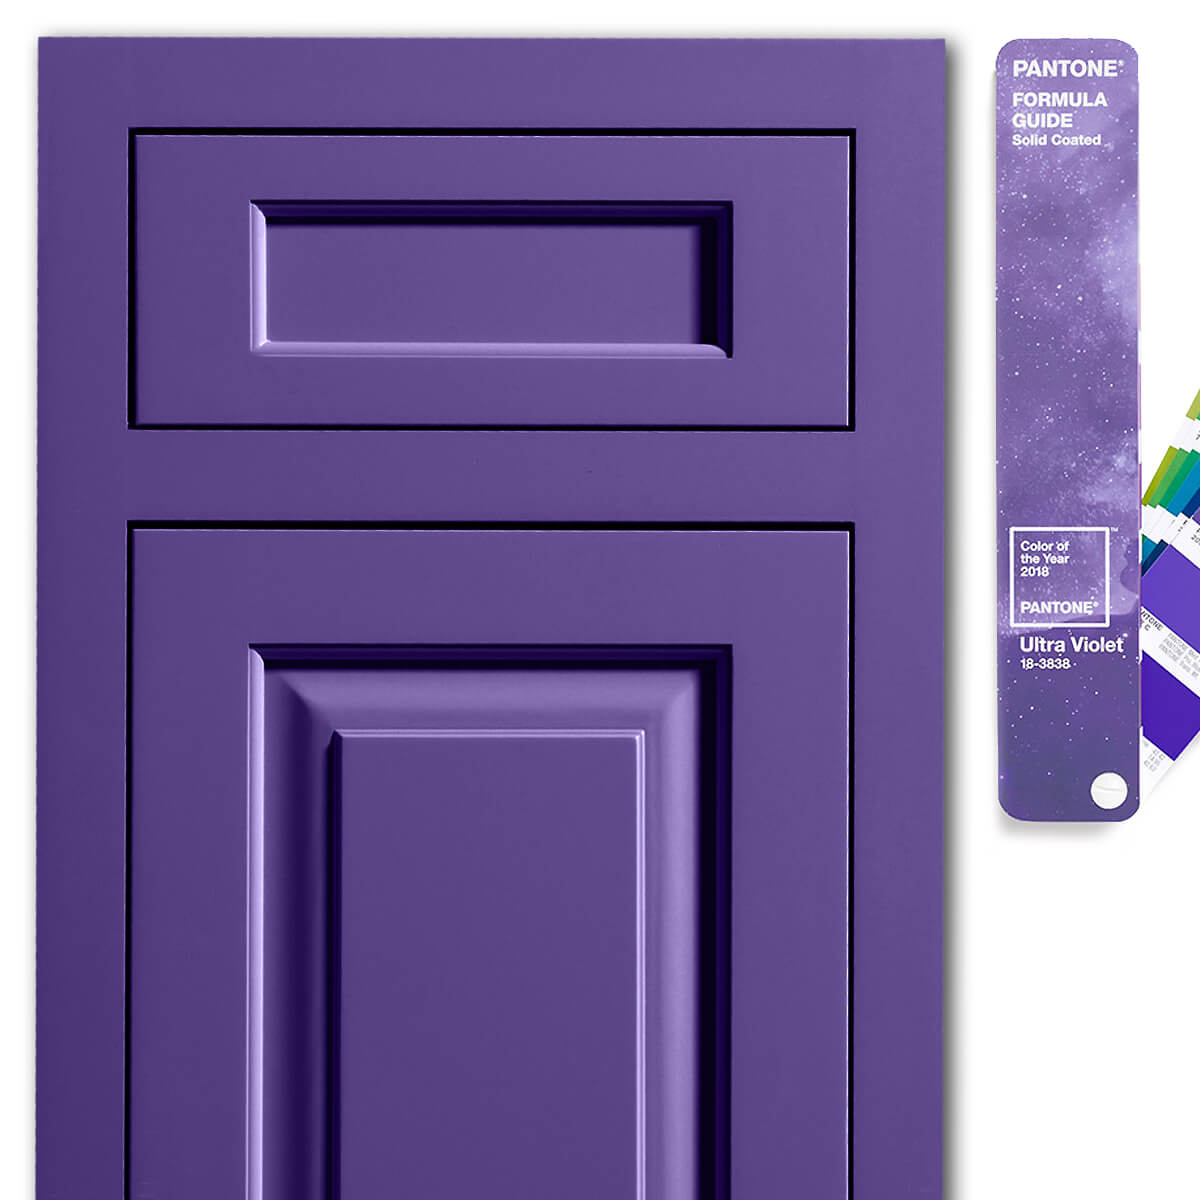 Dura Supreme Kendal inset door style in Custom Finish matched to Ultra Violet Pantone 18-3838.